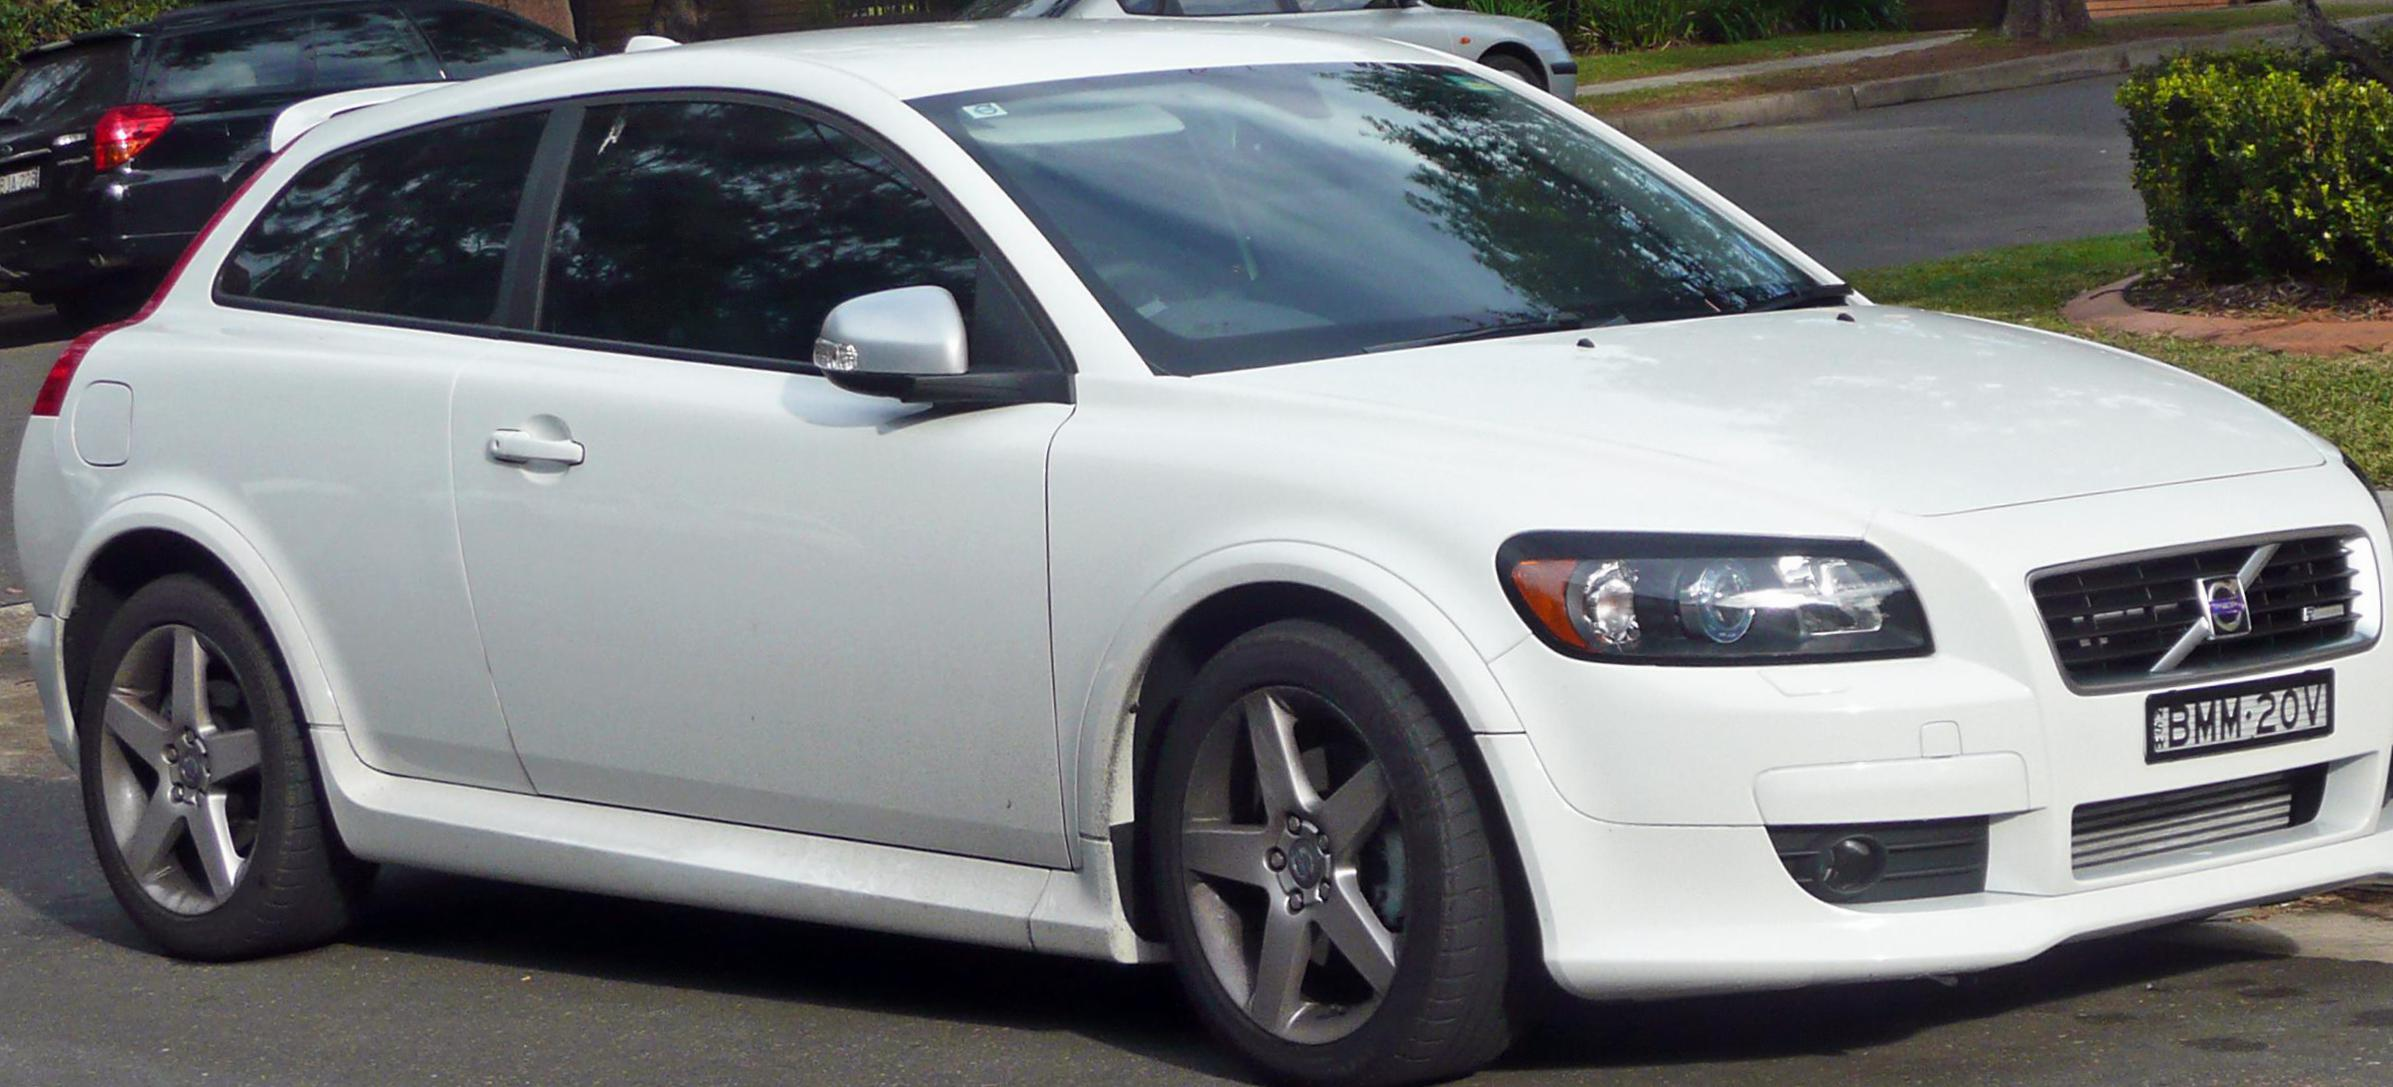 Volvo C30 Photos and Specs. Photo: C30 Volvo for sale and 23 perfect